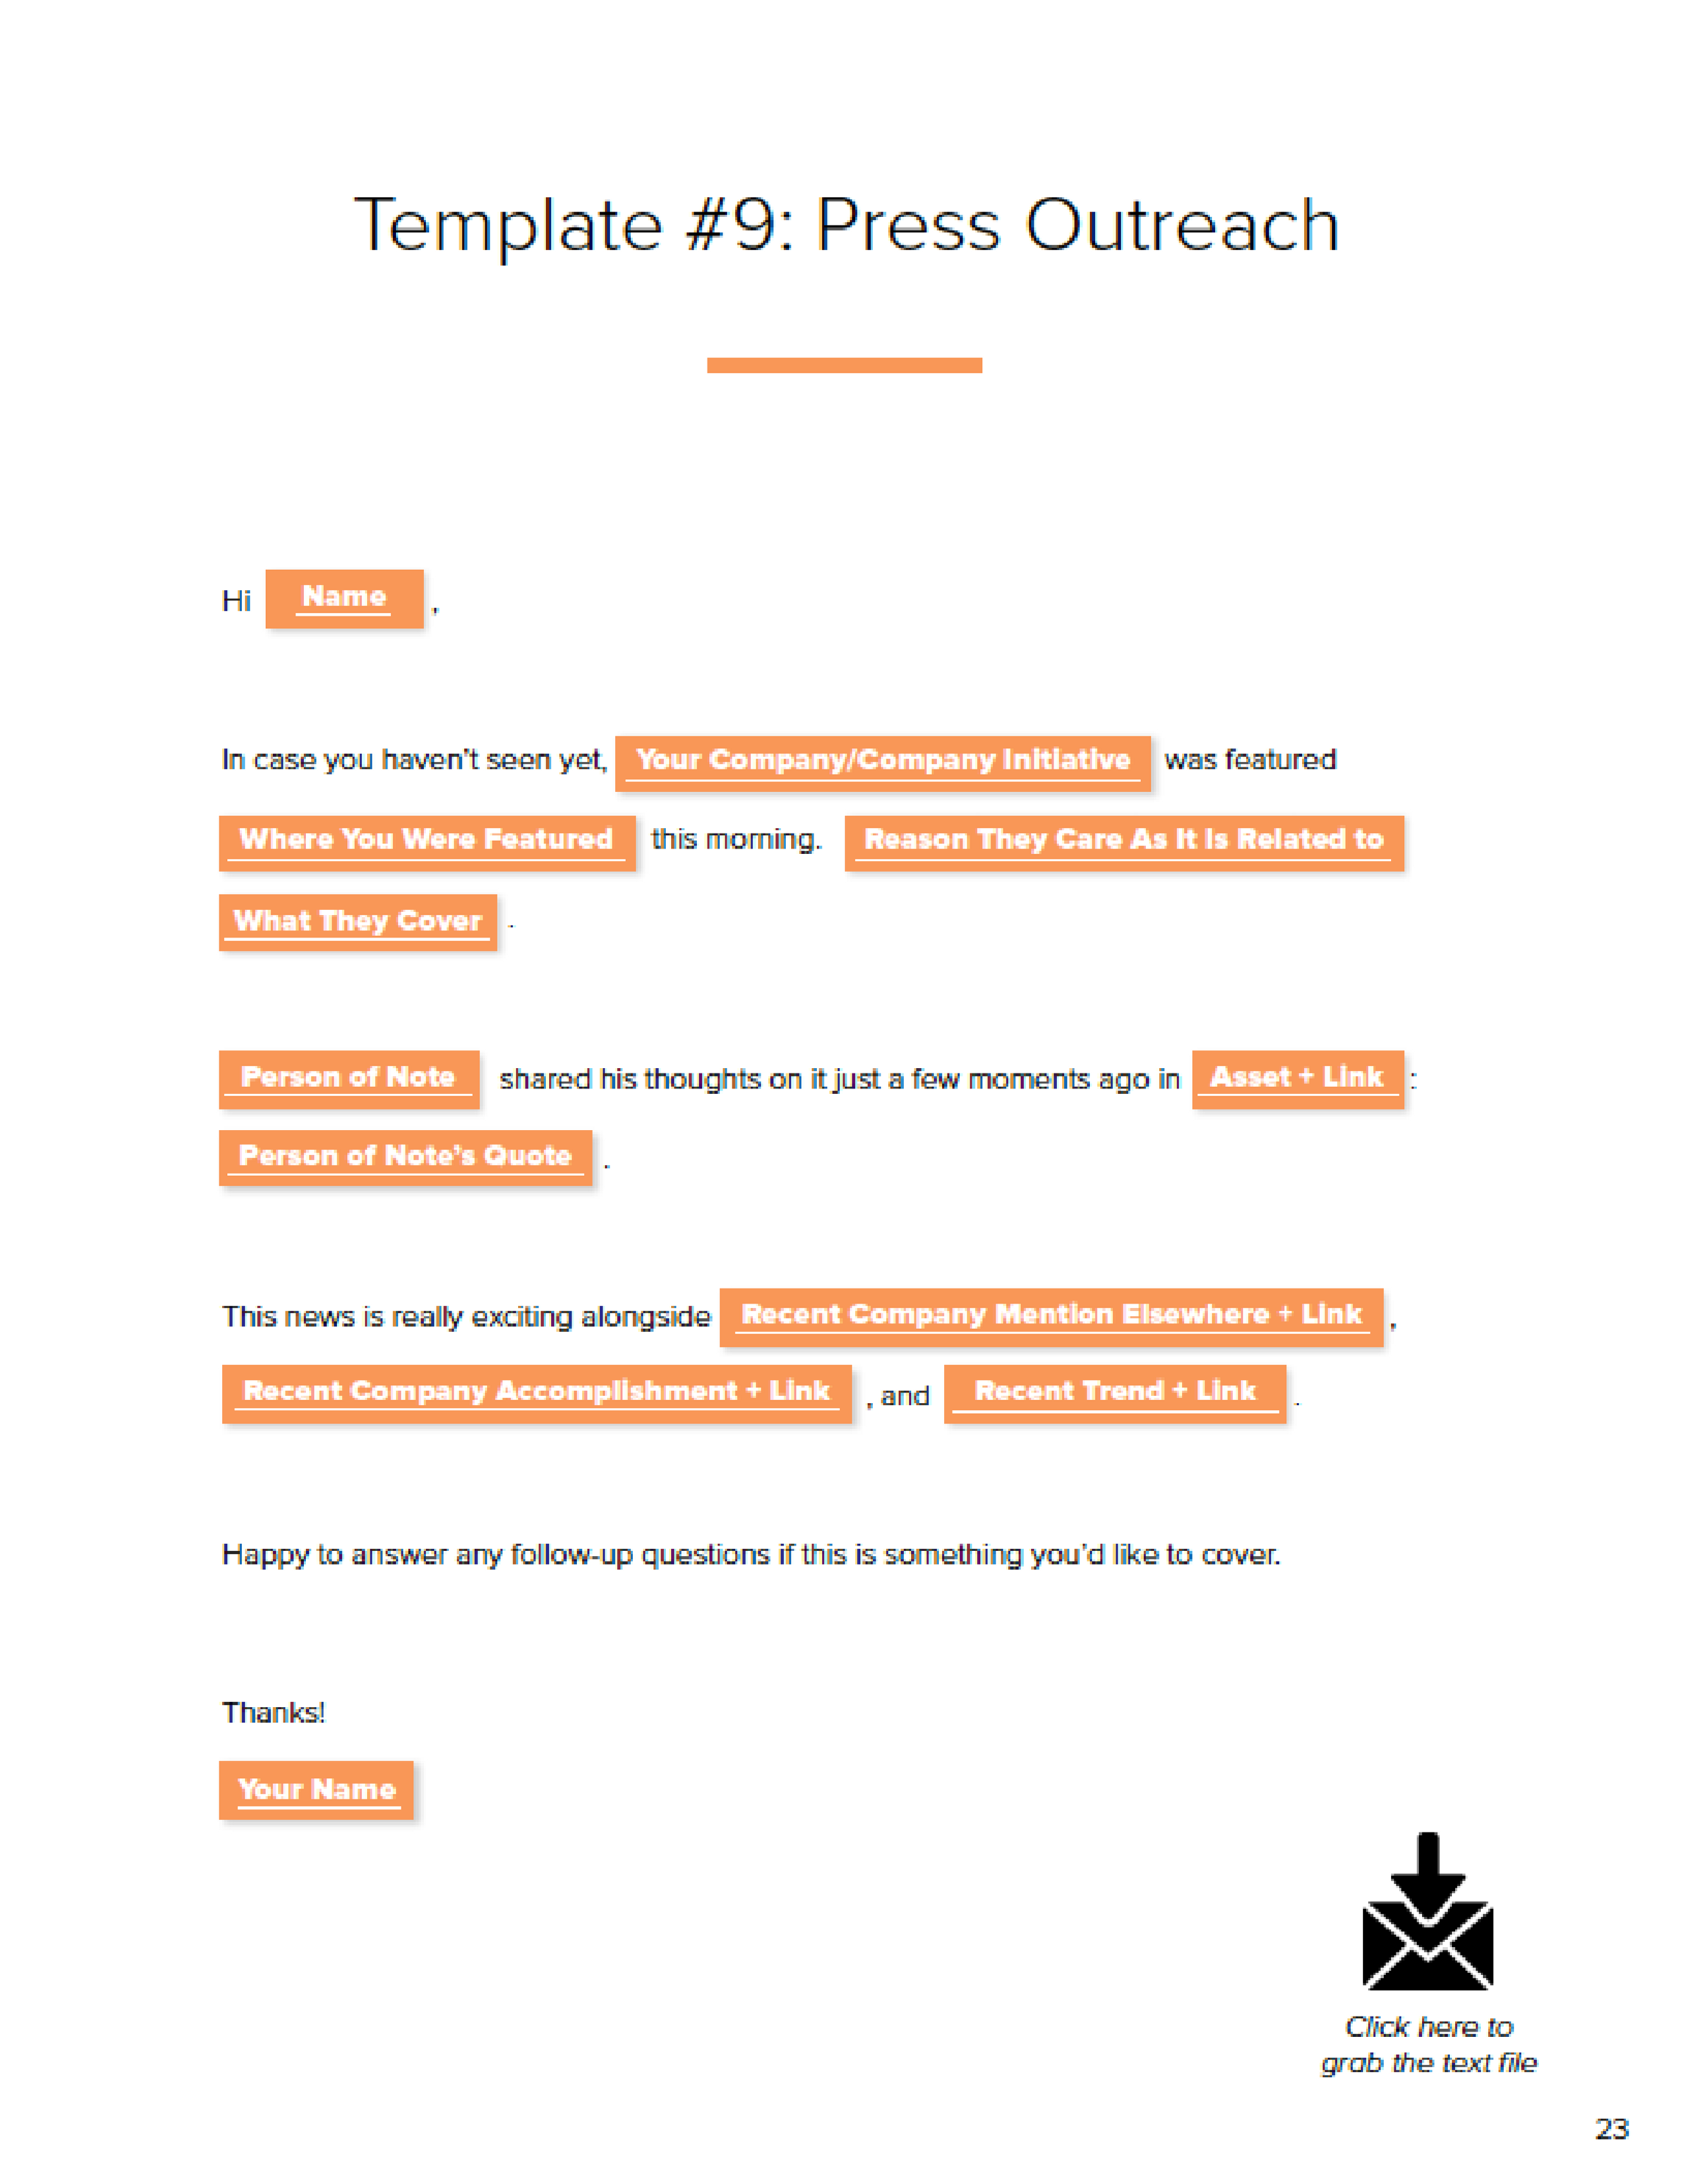 Email template for press outreach for startups and entrepreneurs